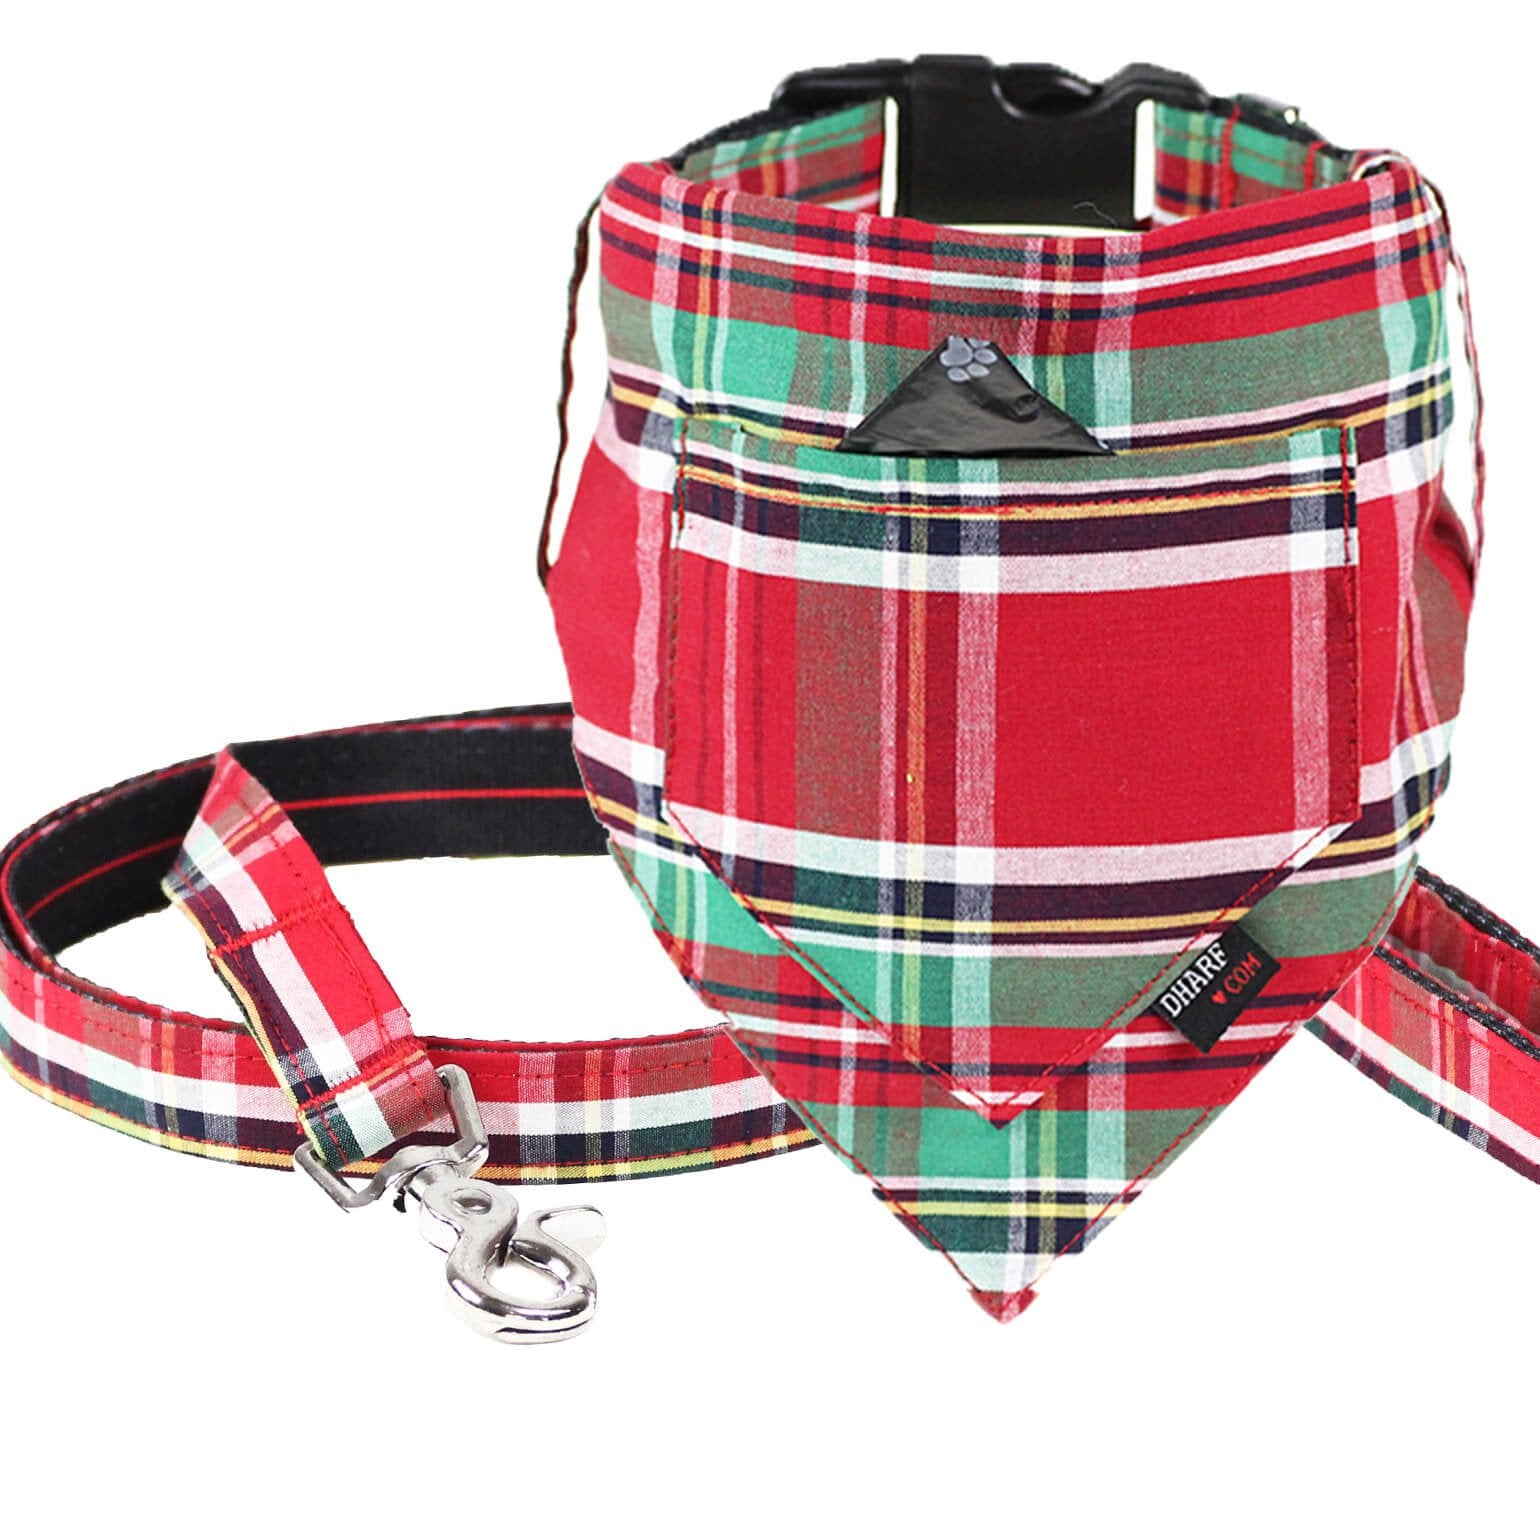 Dharf dog bandana, collar and leash set in red and green tartan